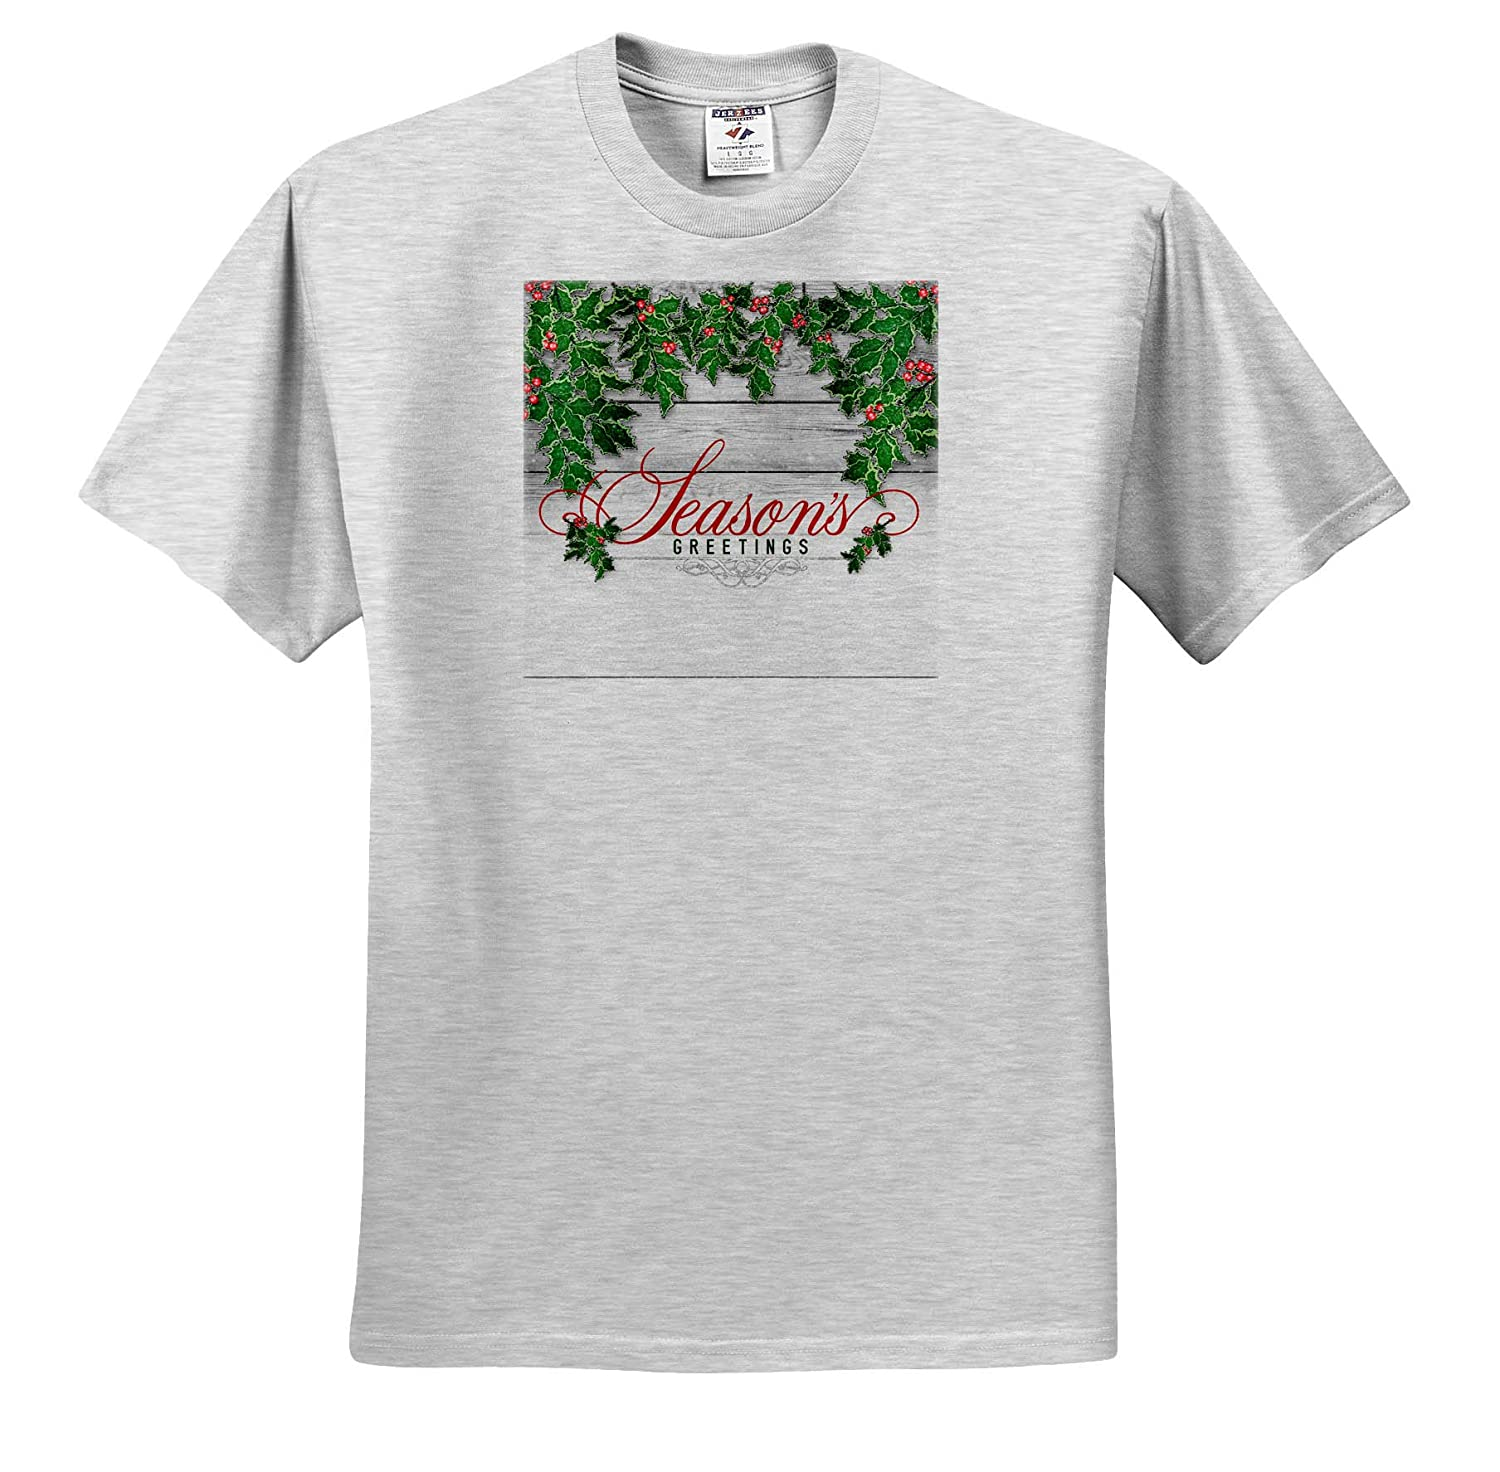 3dRose Doreen Erhardt Christmas Collection Seasons Greetings with Western Barn Wood for Country Christmas T-Shirts